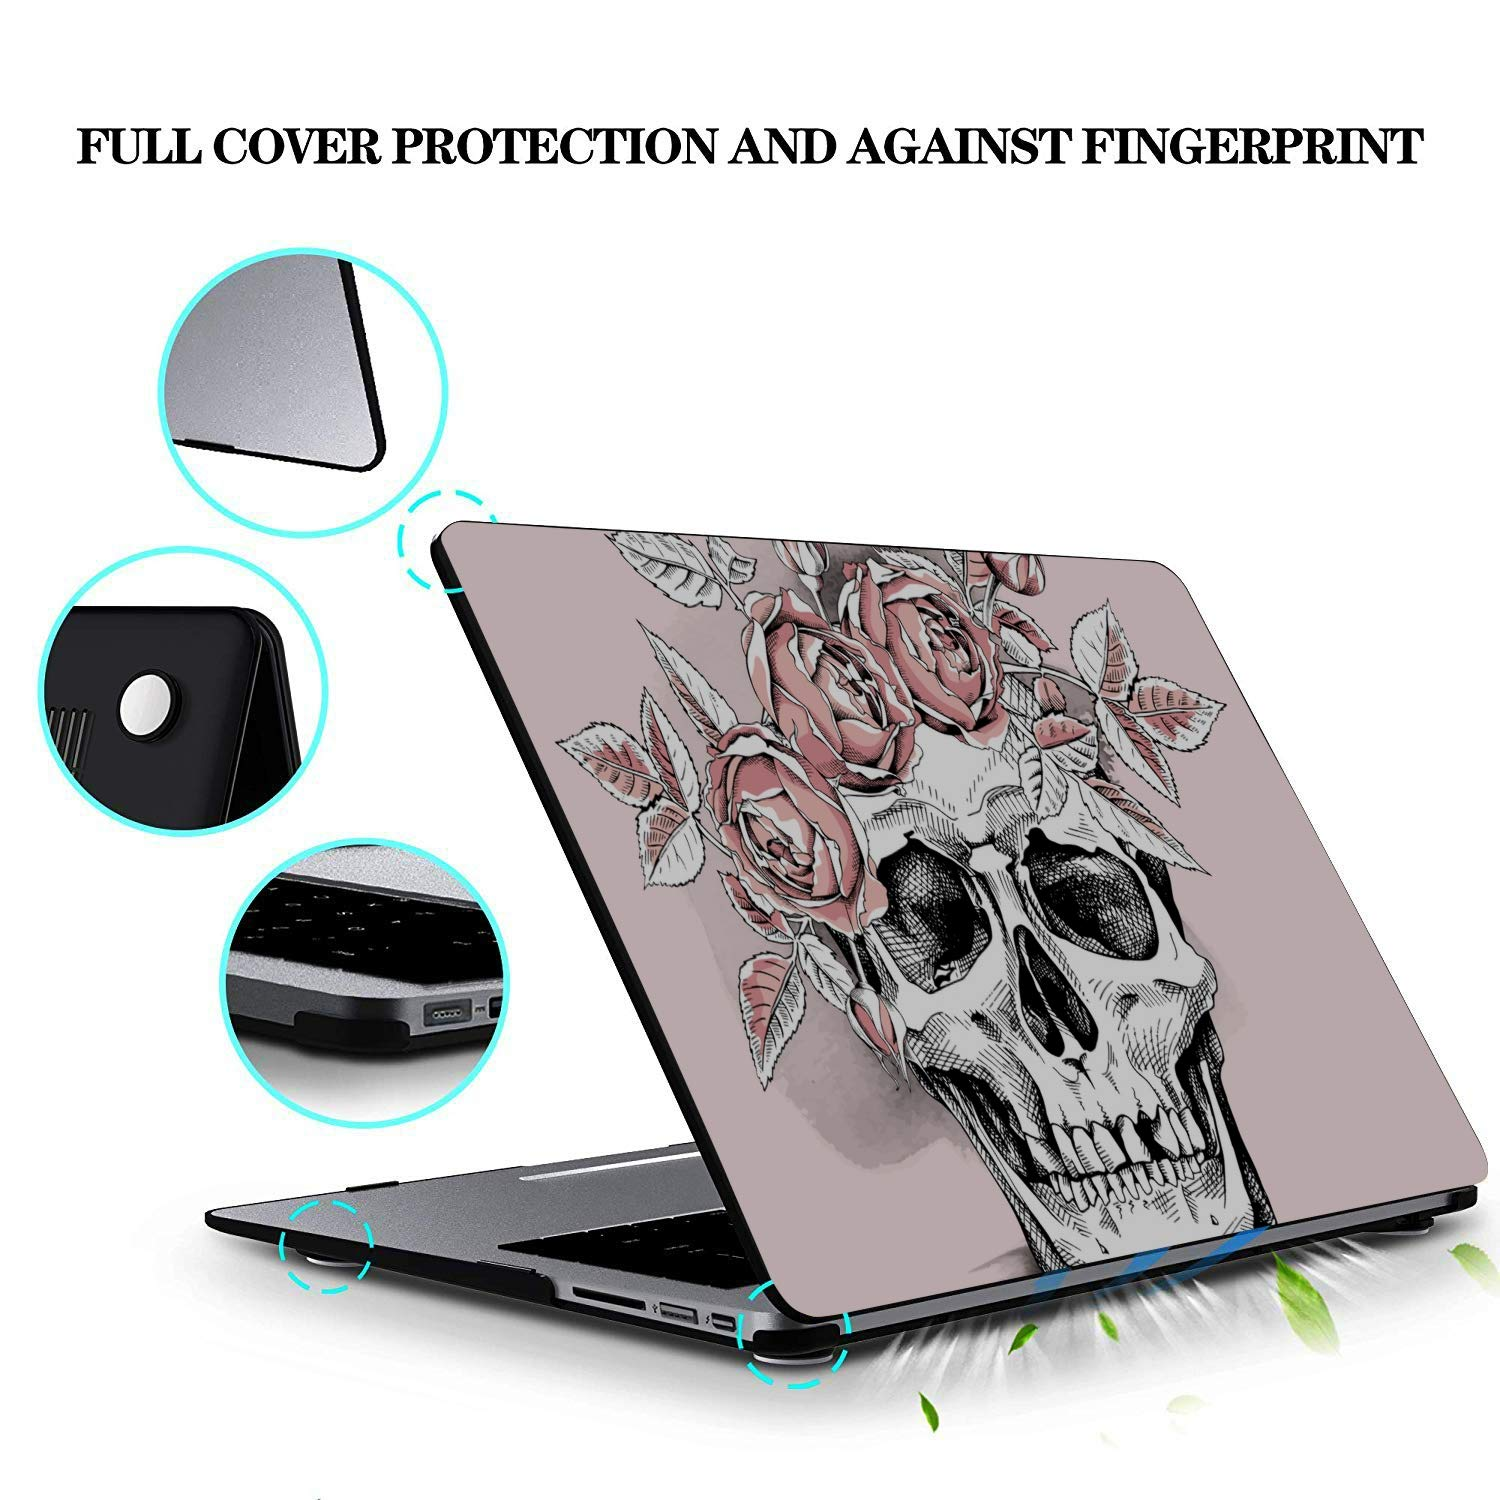 MacBook Pro 2015 Cover Colorful Cute Flower Sugar Skull Plastic Hard Shell Compatible Mac Air 11 Pro 13 15 2018 MacBook Pro Case Protection for MacBook 2016-2019 Version